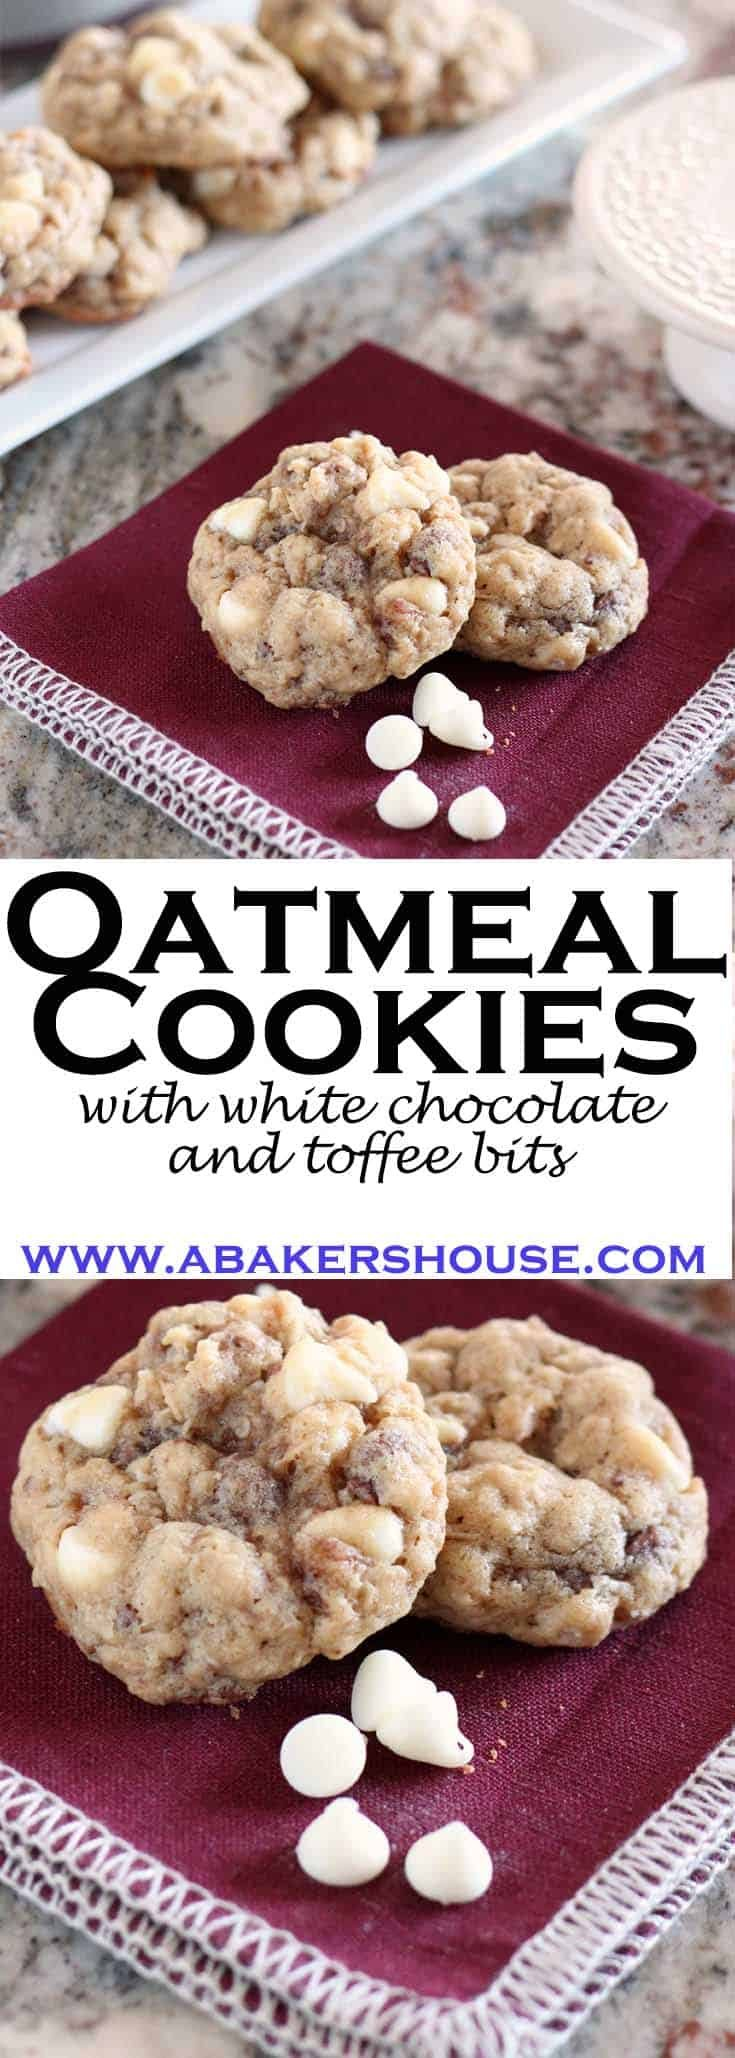 Here are Oatmeal Cookies with White Chocolate Chips and Toffee Bits. I like the sweetness that the white chocolate adds to the oatmeal cookies and the toffee, well...you can't go wrong with toffee bits! Dried cherries or cranberries would have been a nicealternative too. #oatmealcookies #whitechocolate #toffee #abakershouse